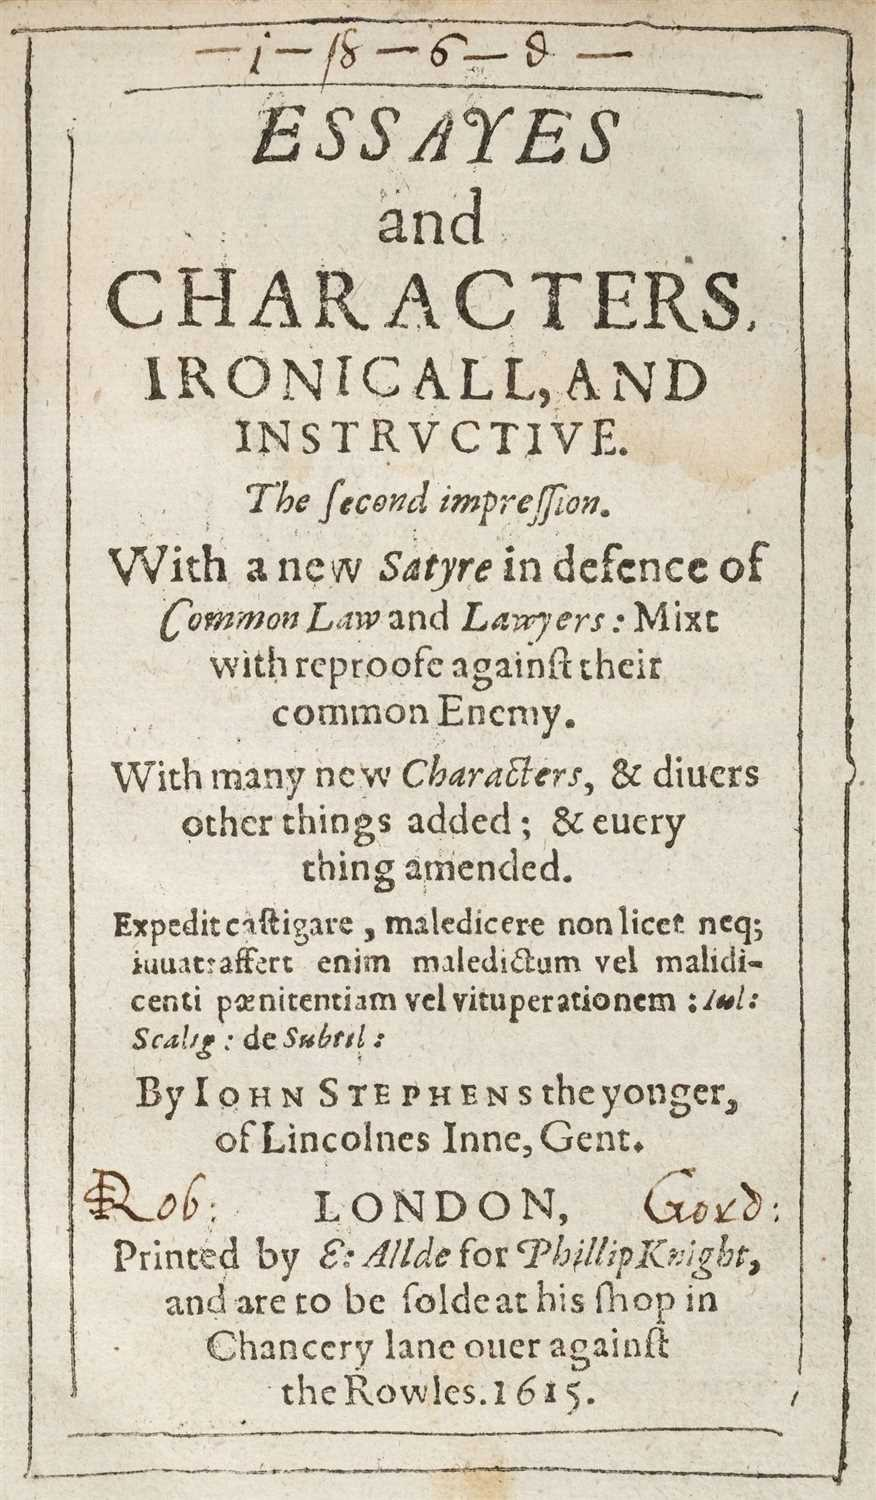 Lot 10-Stephens (John). Essayes and Characters, Ironicall, and Instructive, 1615